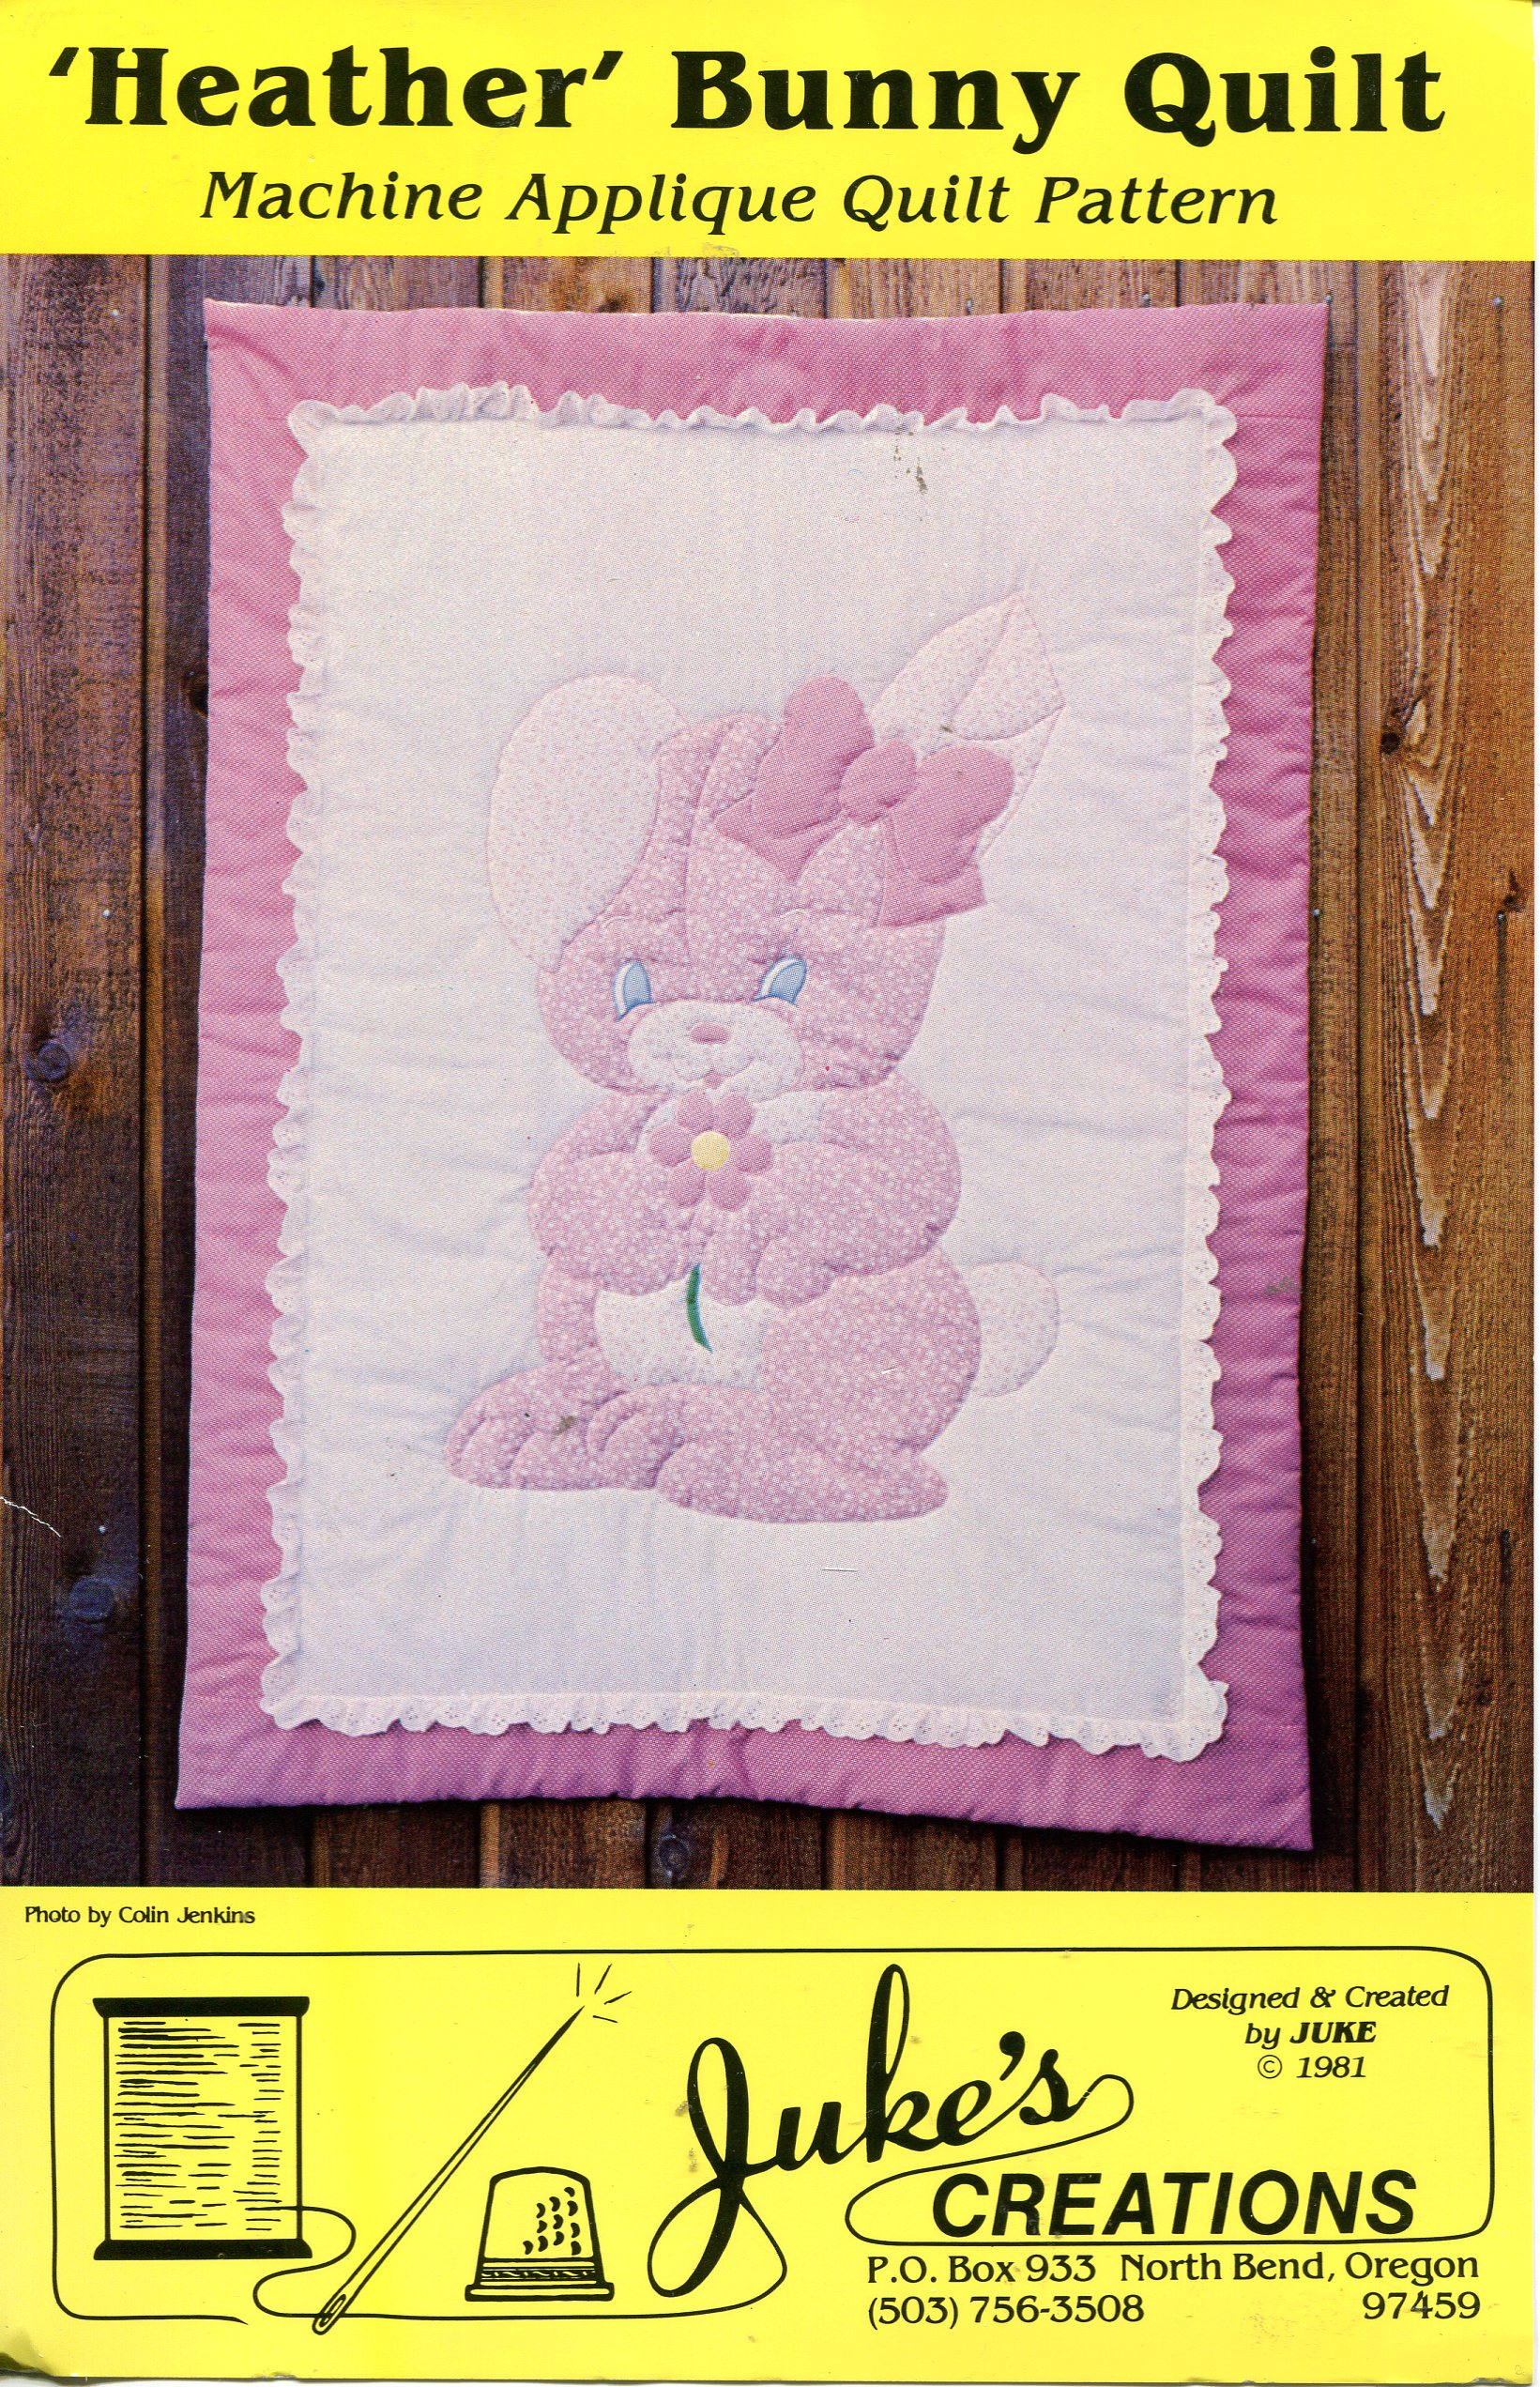 Juke's Creations Heather Bunny Quilt